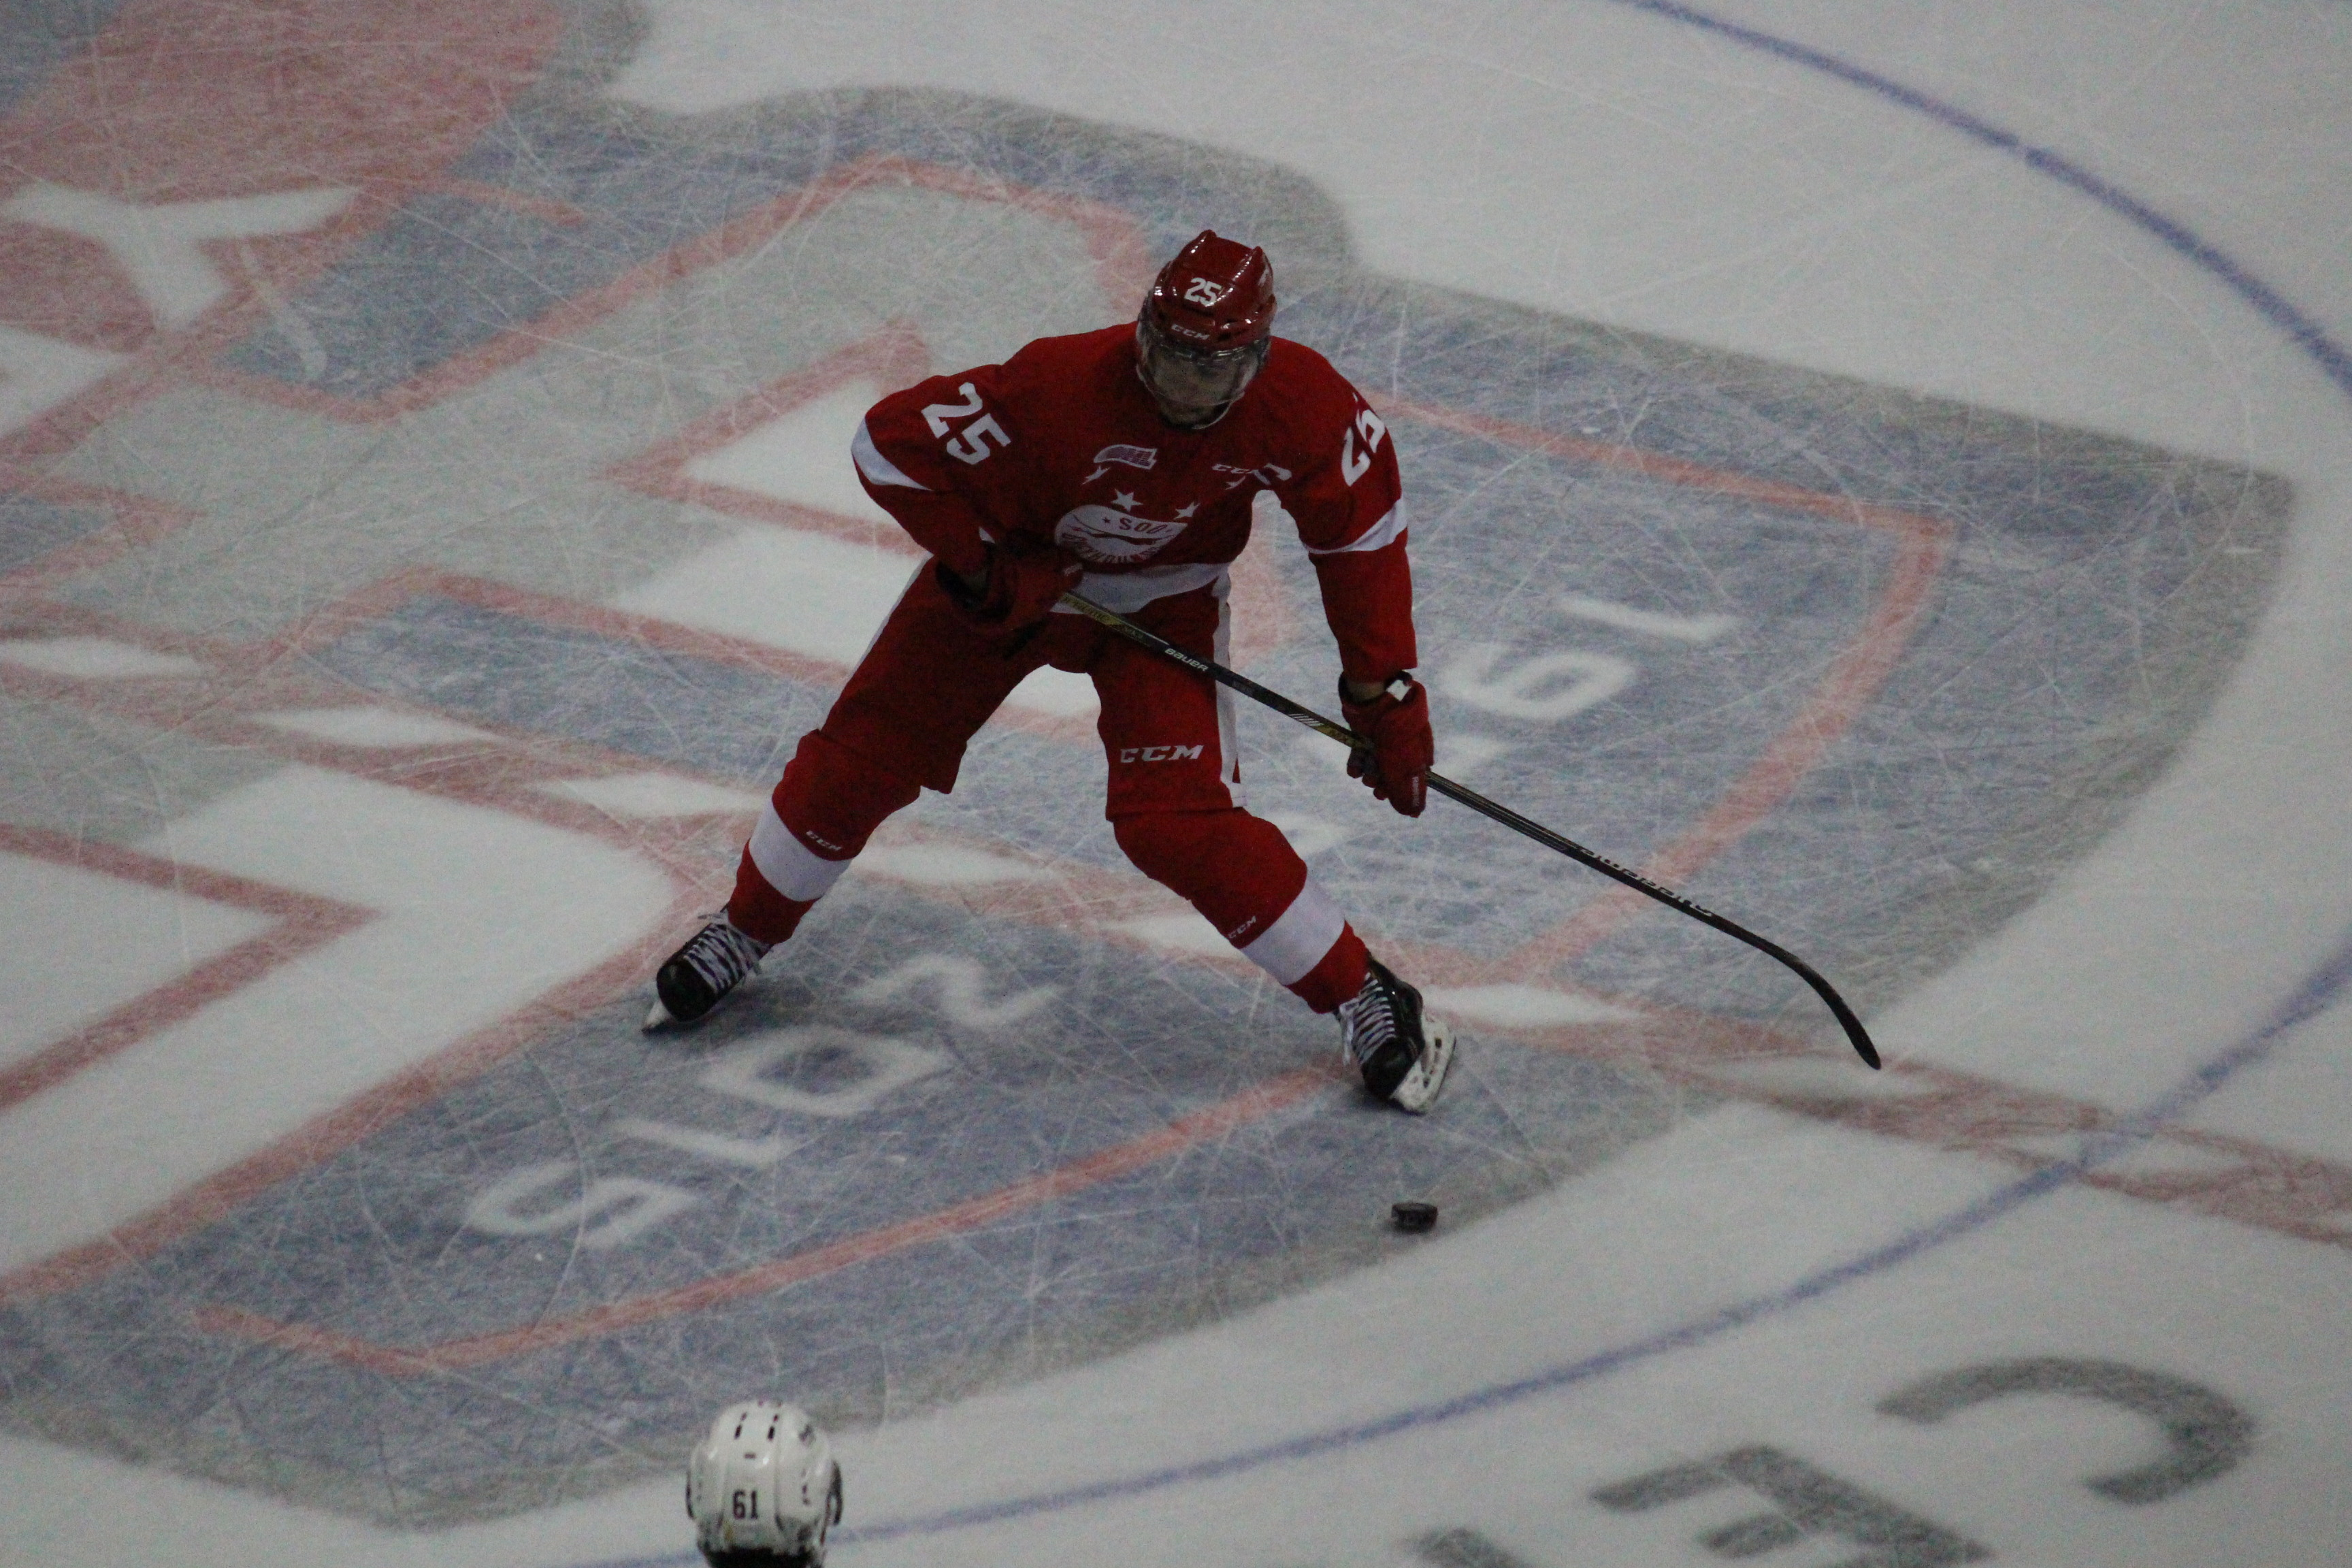 The Windsor Spitfires lose 2-4 against the Sault Ste Marie Greyhounds on November 16, 2014 at the WFCU Centre. (Photo by Jason Viau)